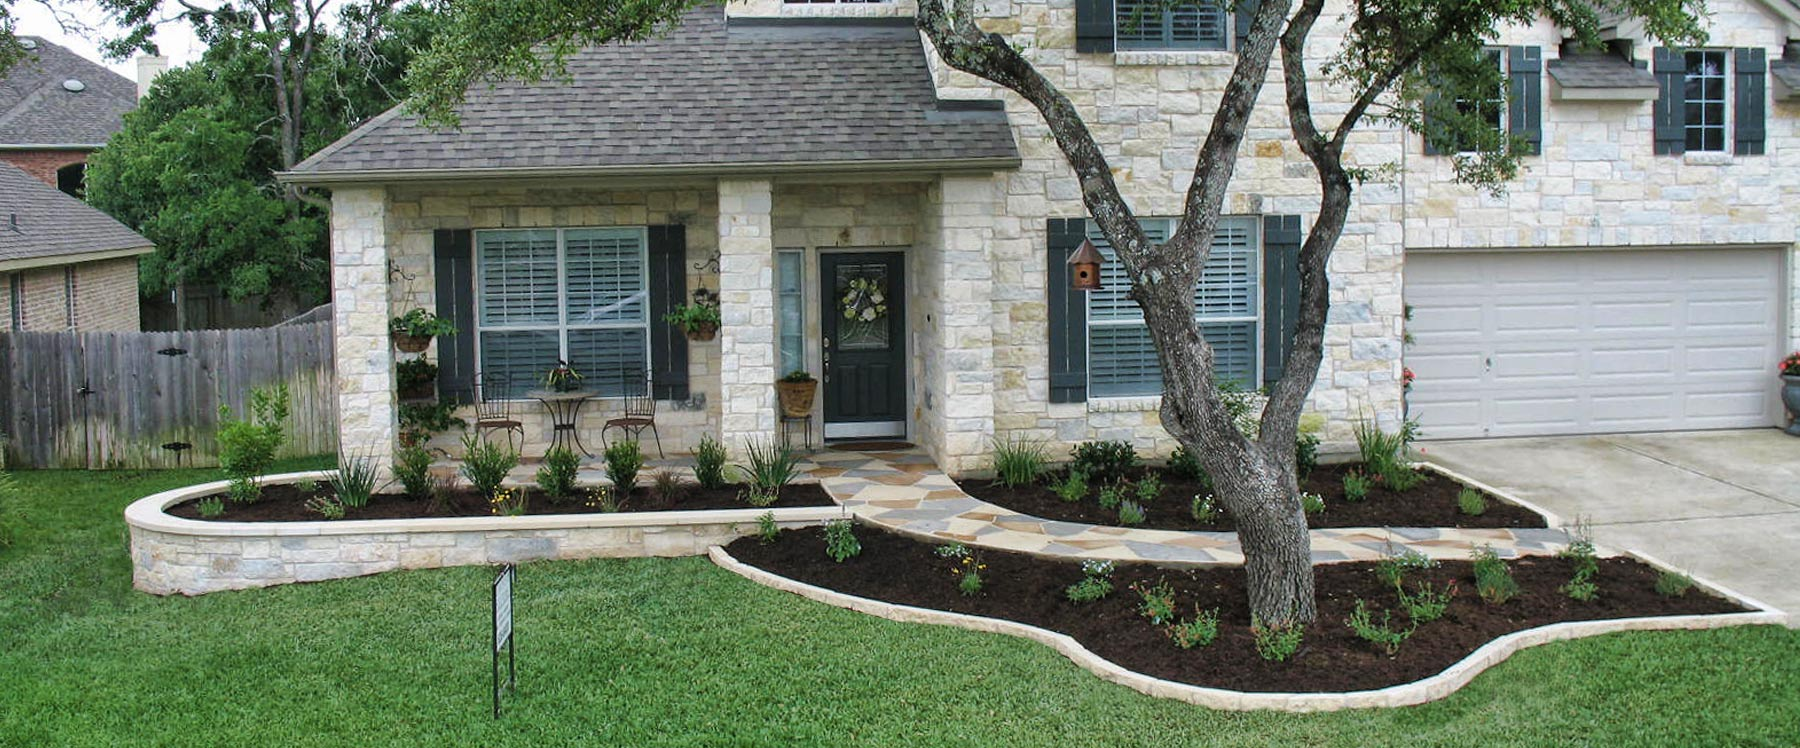 austin tx landscaping company